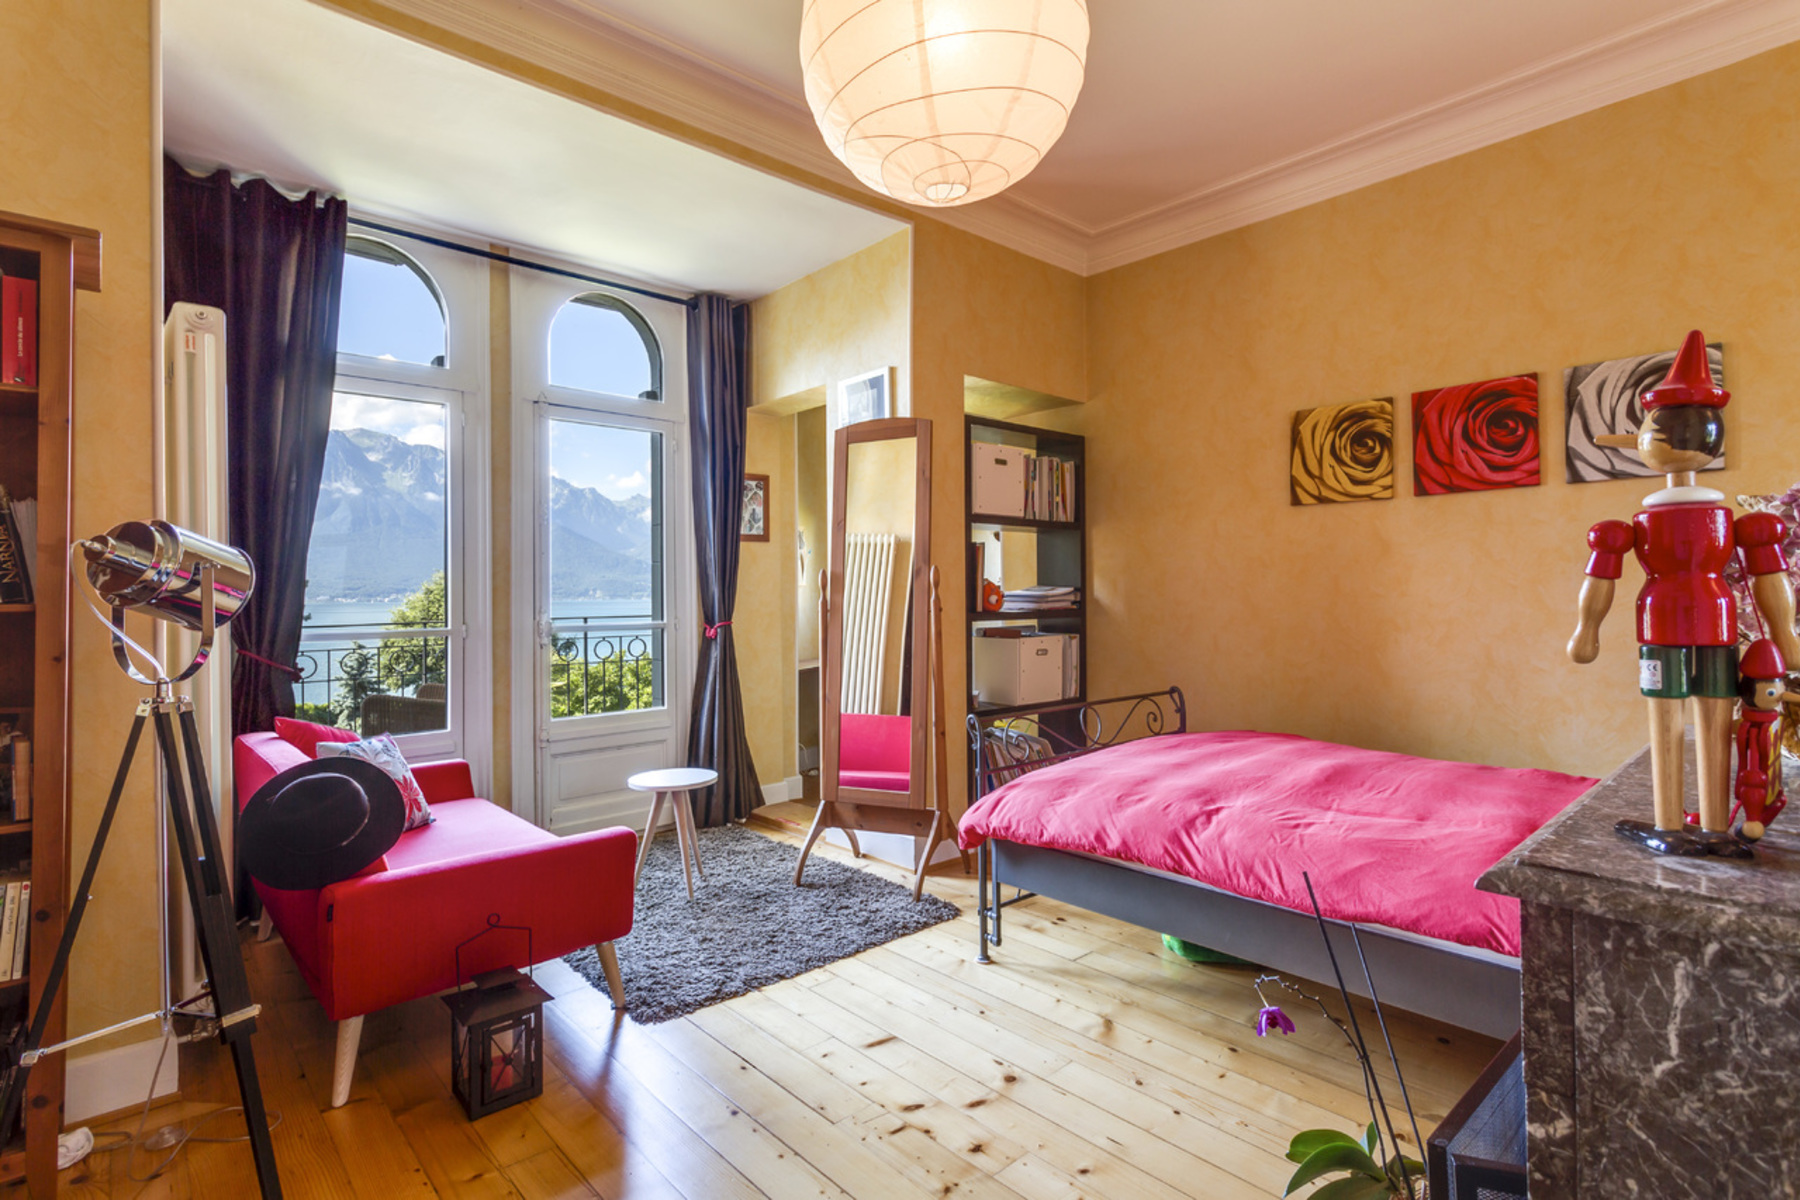 Additional photo for property listing at Stunning 19th century property, fully renovated Beautiful lake view Clarens Clarens, Vaud 1815 Switzerland